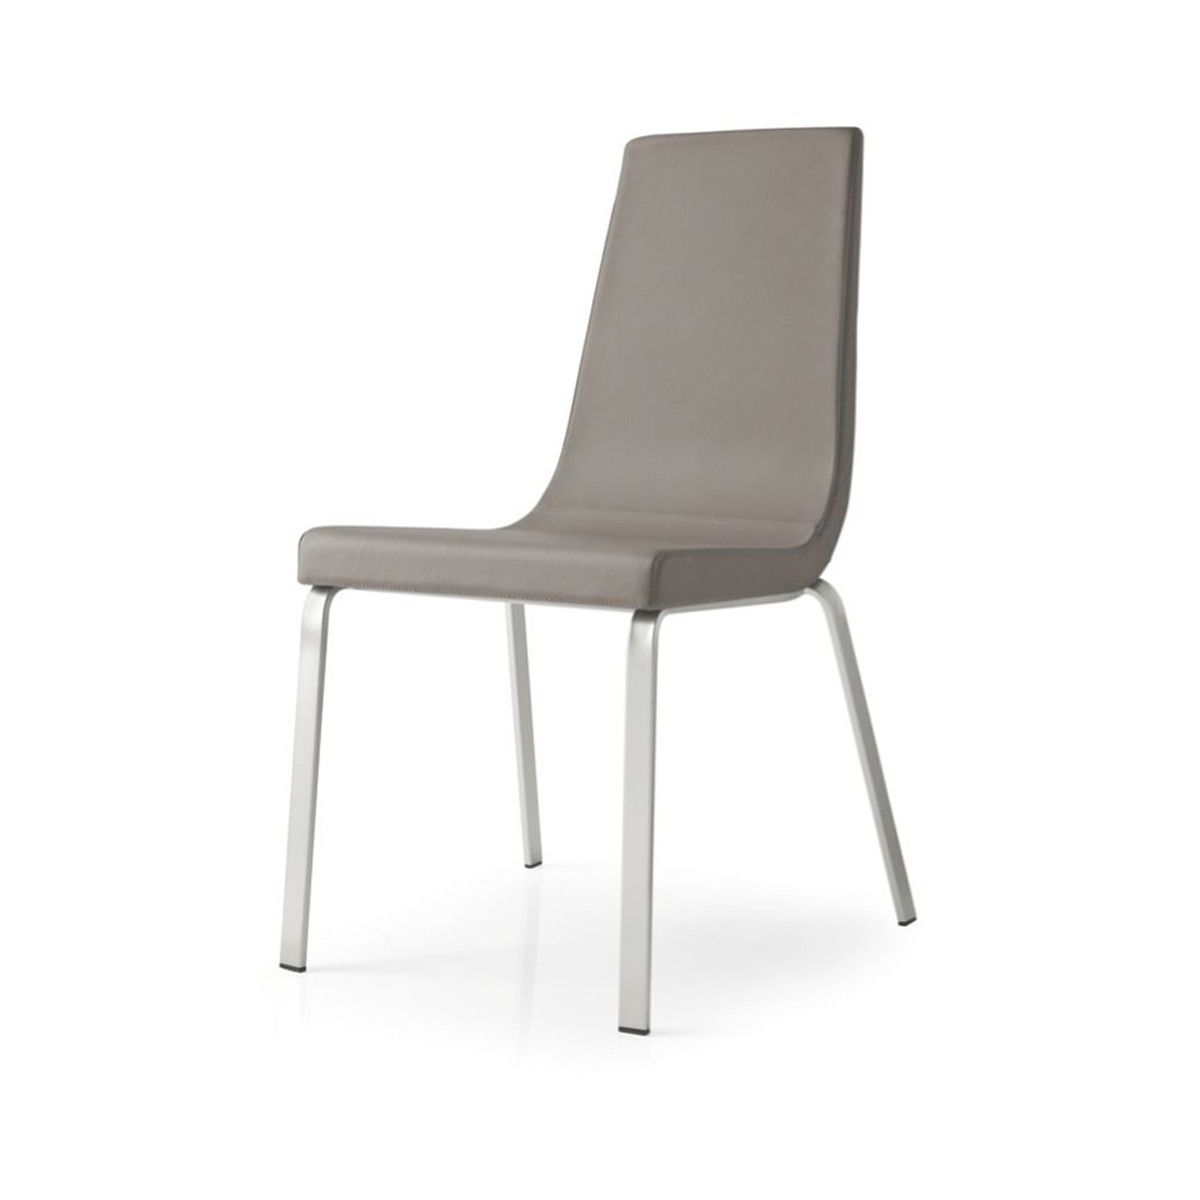 Sedia CRUISER LEATHER by Connubia Calligaris